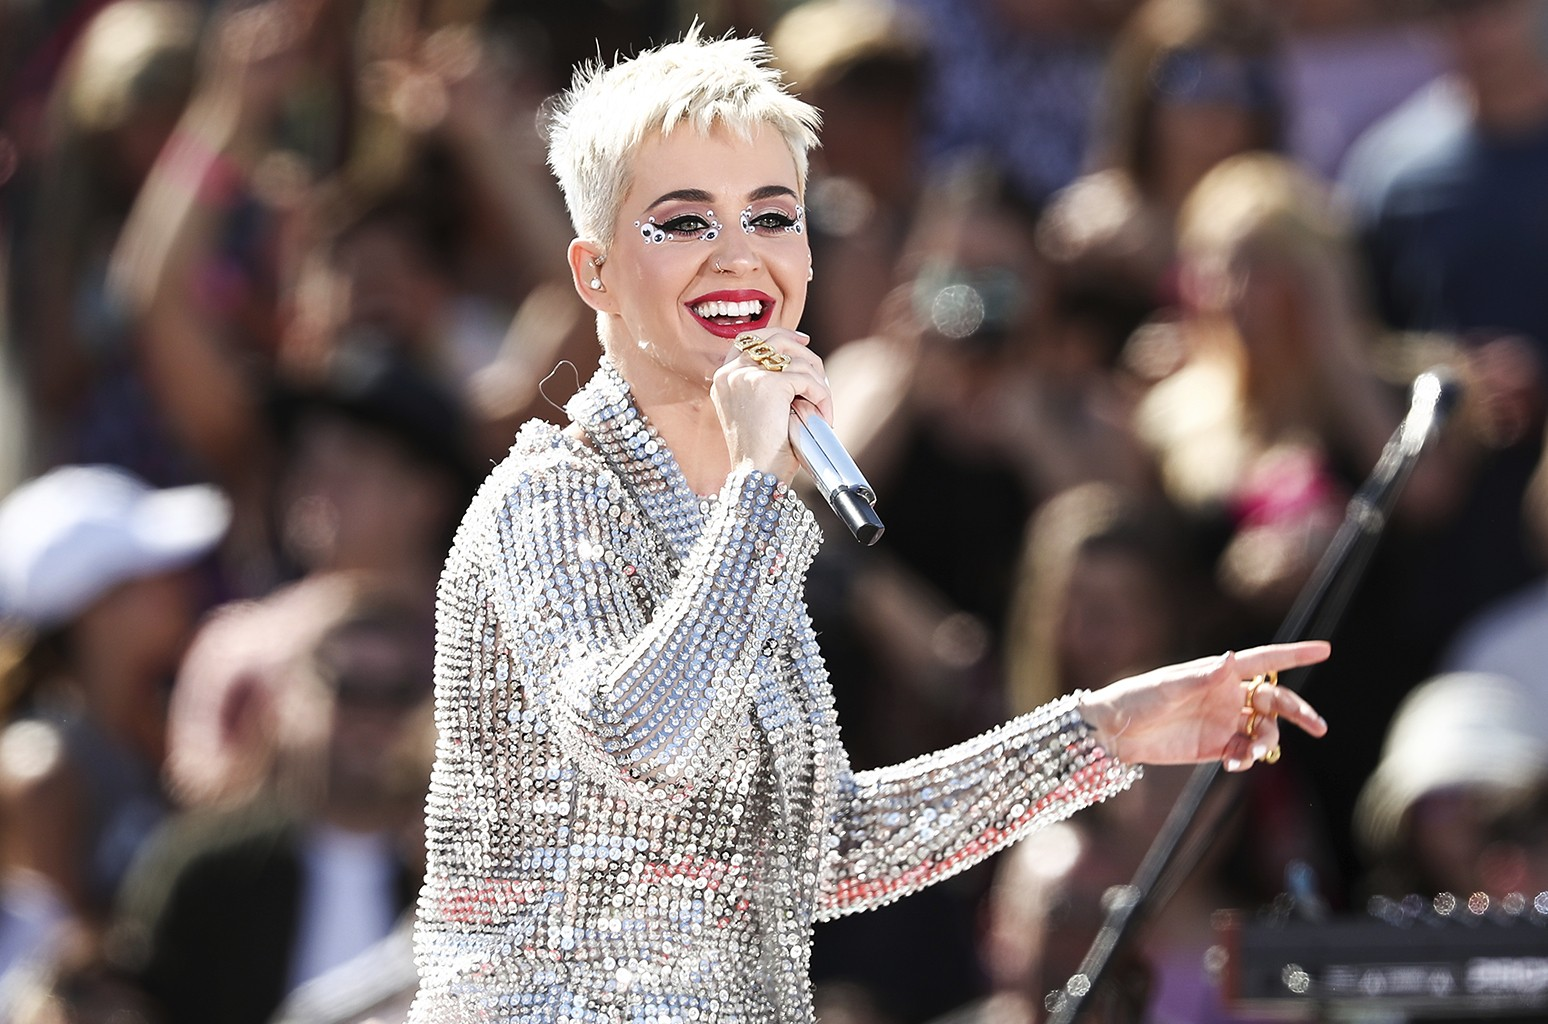 Katy Perry performs during 'Katy Perry - Witness World Wide' exclusive YouTube Livestream Concert at Ramon C. Cortines School of Visual and Performing Arts on June 12, 2017 in Los Angeles.